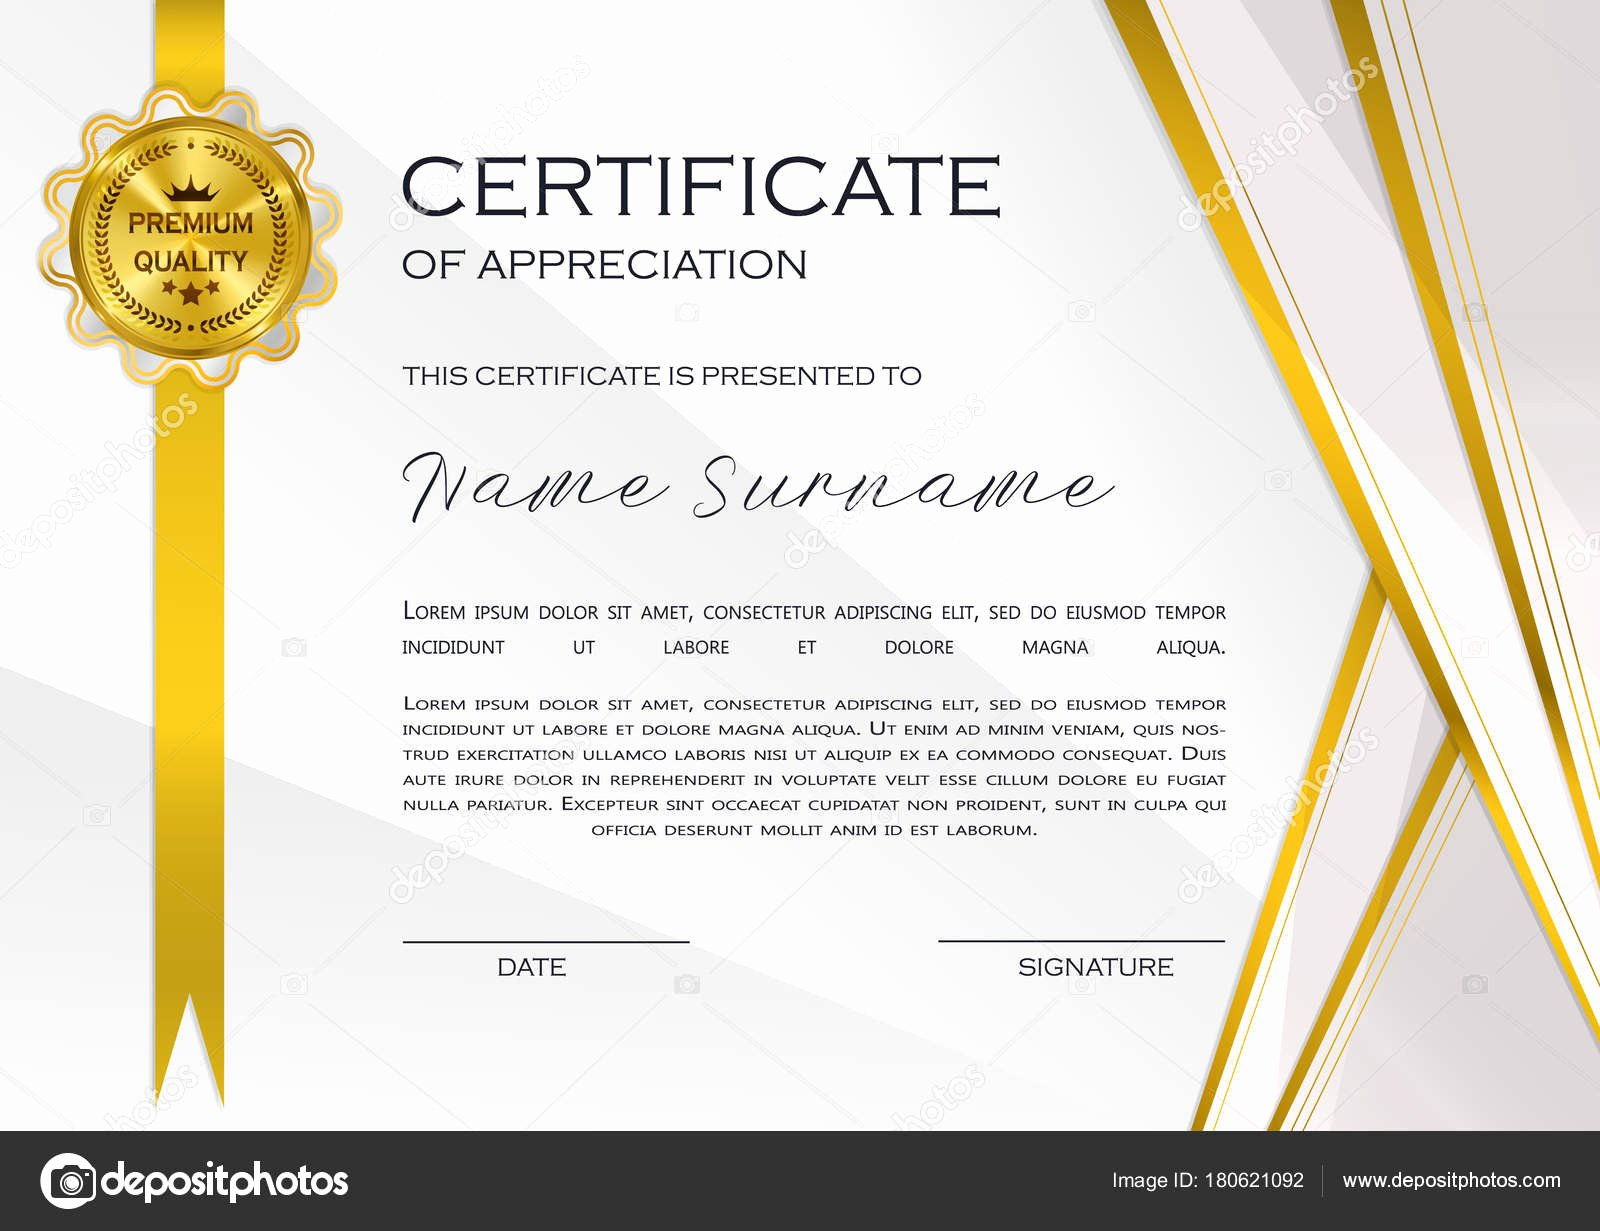 Certificate Of Quality Template Lovely Qualification Certificate Appreciation Design Elegant